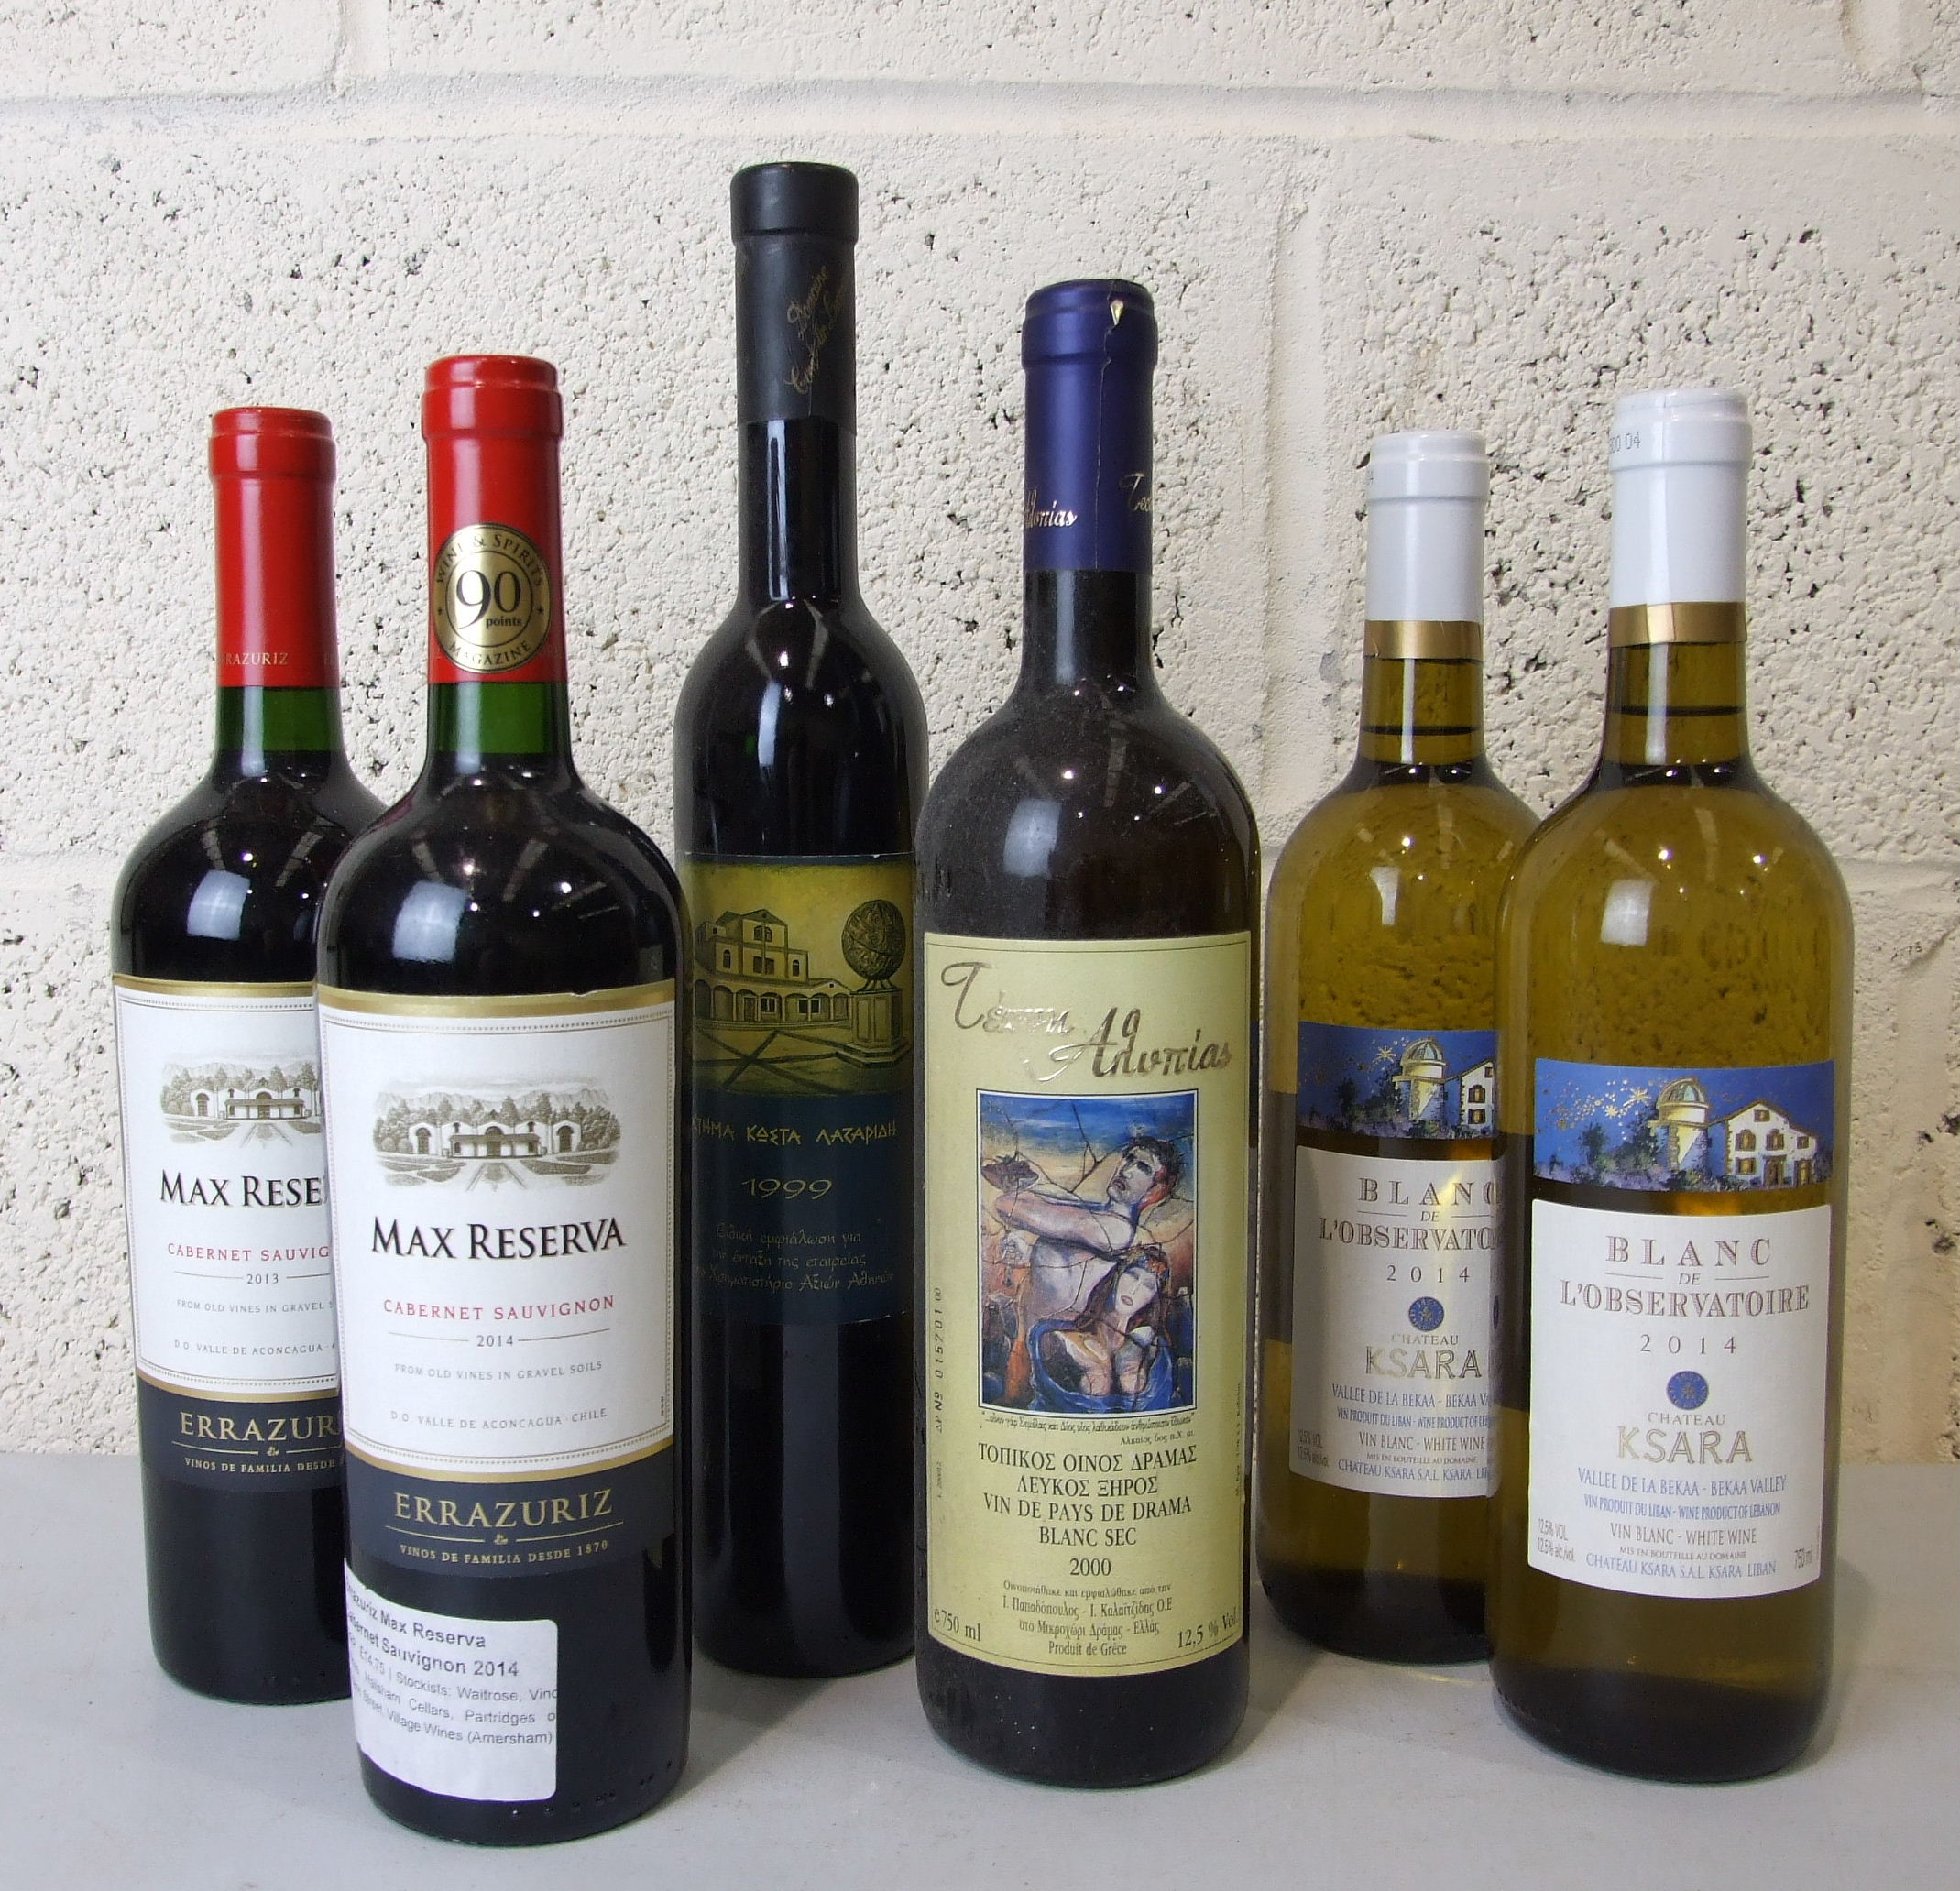 Lot 58 - Chile, Errazuriz Max Reserva 2013/14, two bottles, and, Greece, four bottles, mixed, (6).